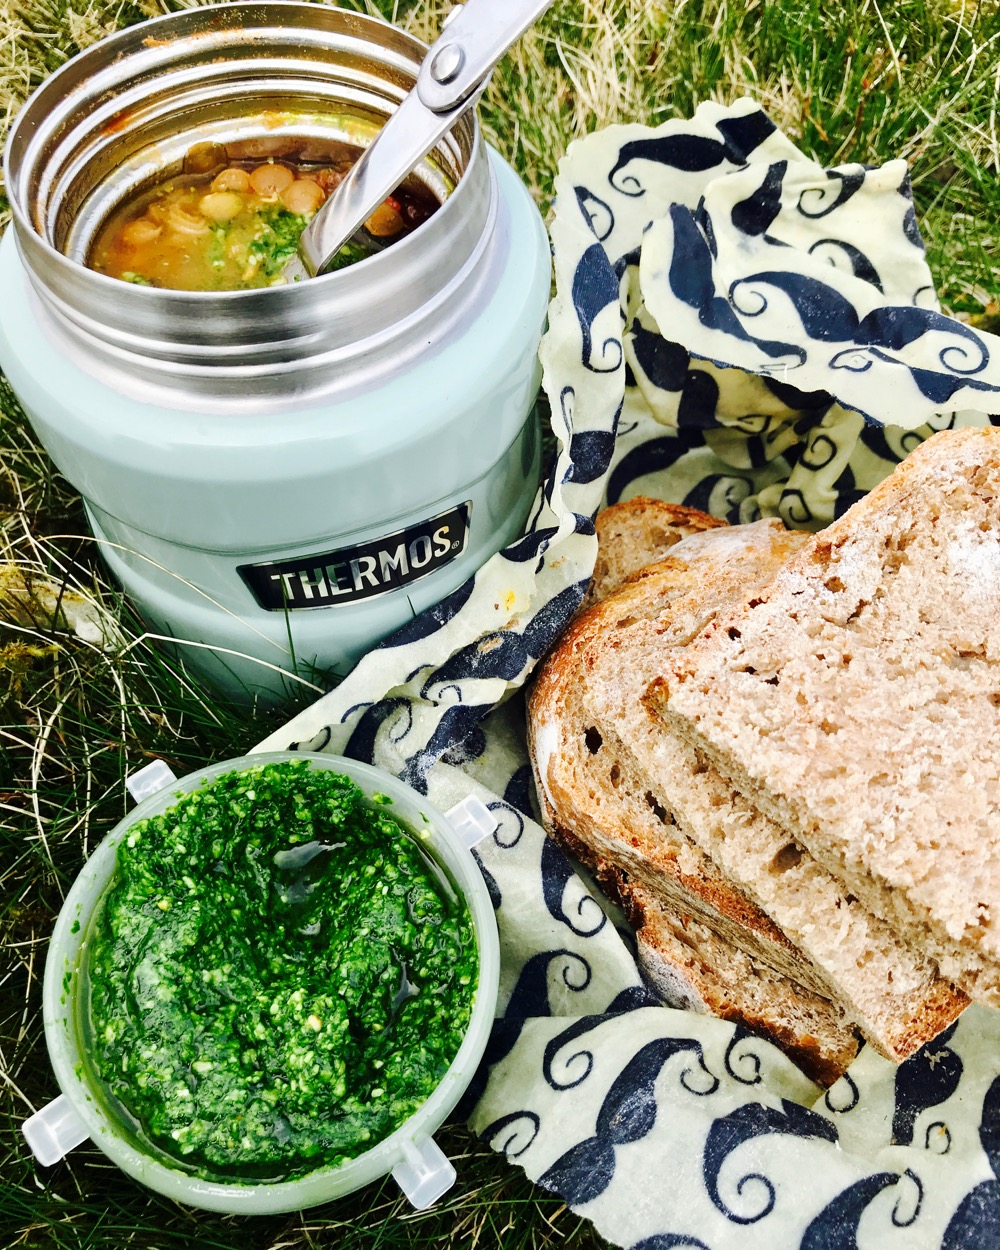 Thermos Food Flask Soup: Lentil Ragu with Wild Garlic Pesto and Sourdough Bread